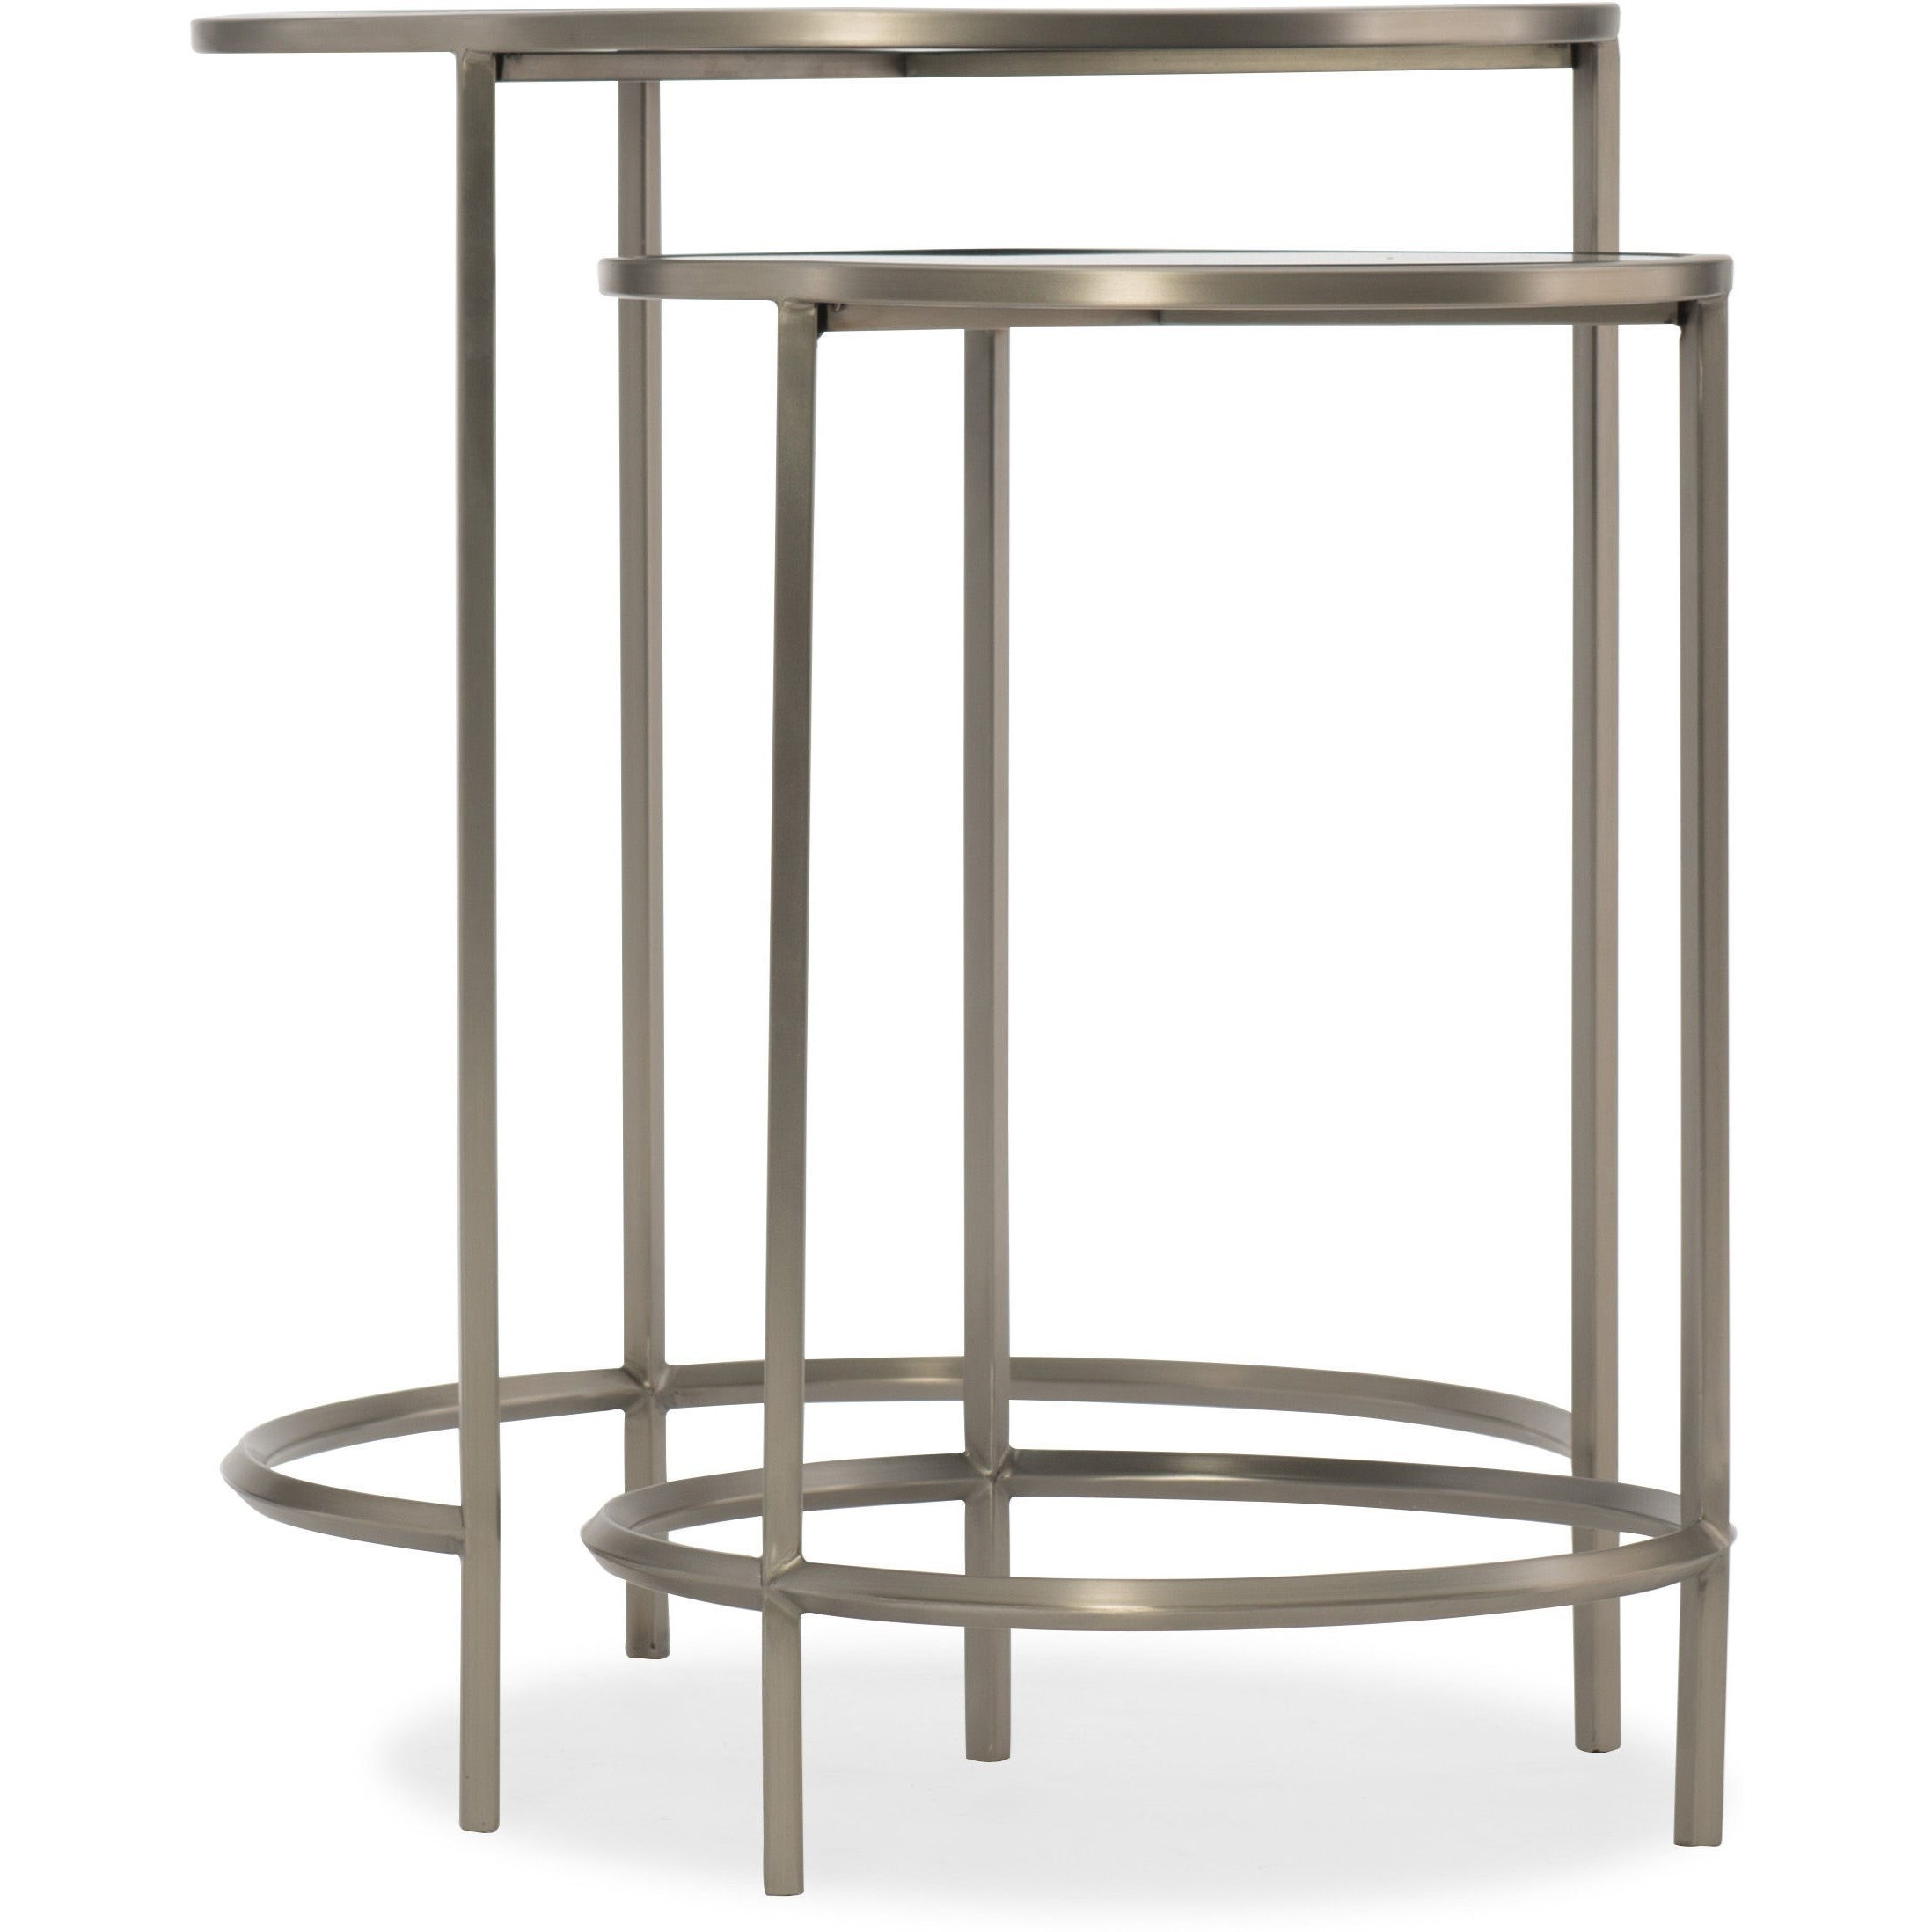 Living Room Accents Nesting Tables by Hooker Furniture at Adcock Furniture